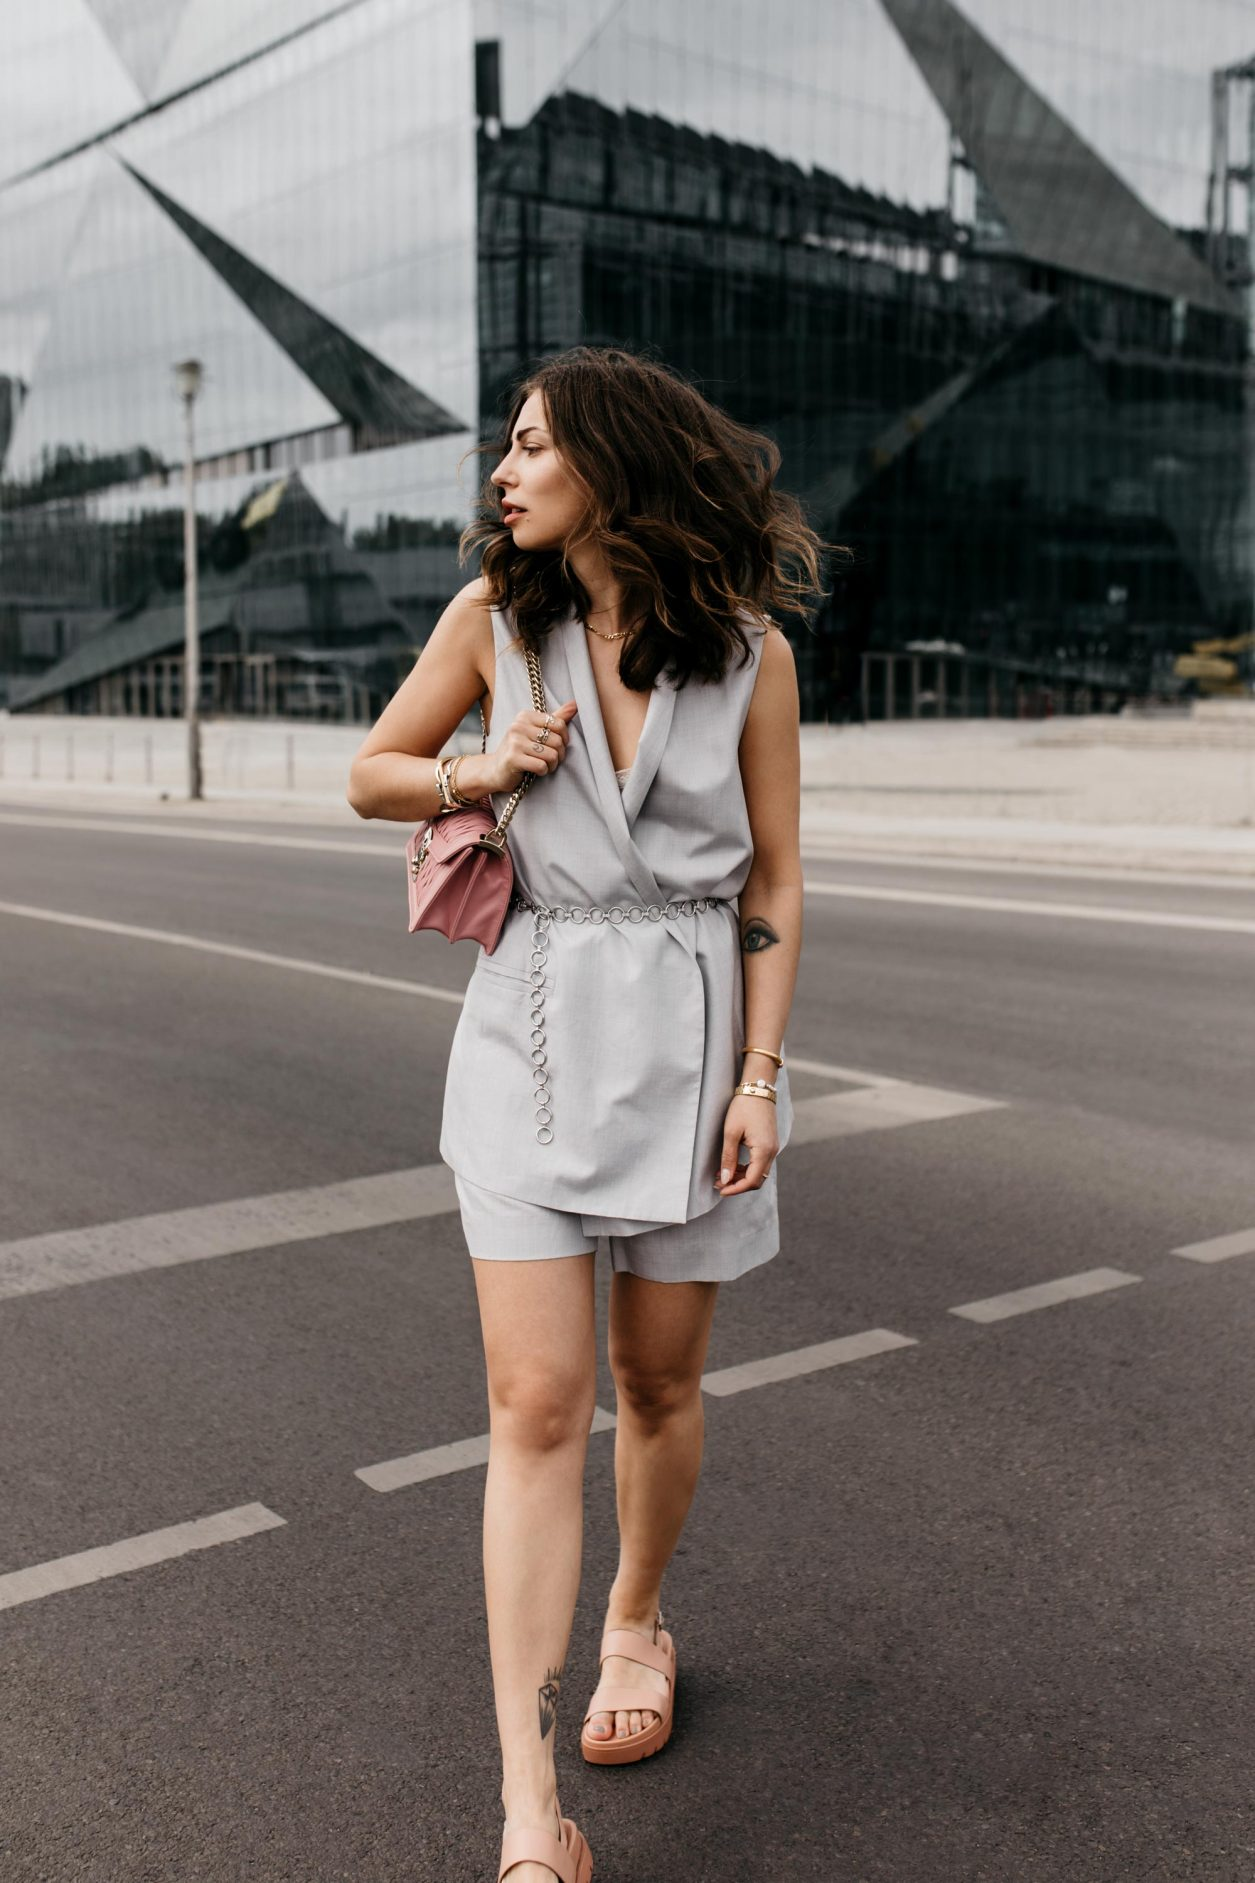 Anzeige | Streetstyle by masha Sedgwick | Fashion and beauty blogger from Berlin, Germany | Summer outfit inspiration, two-piece look, effortless cool, summer business outfit with shorts, feminine, chic, high end | Wearing grey COS shorts and top, silver chain belt, pink Miu Miu cross body bag, pink flat Charles & Keith sandals, Shooting spot: Berlin Hauptbahnhof